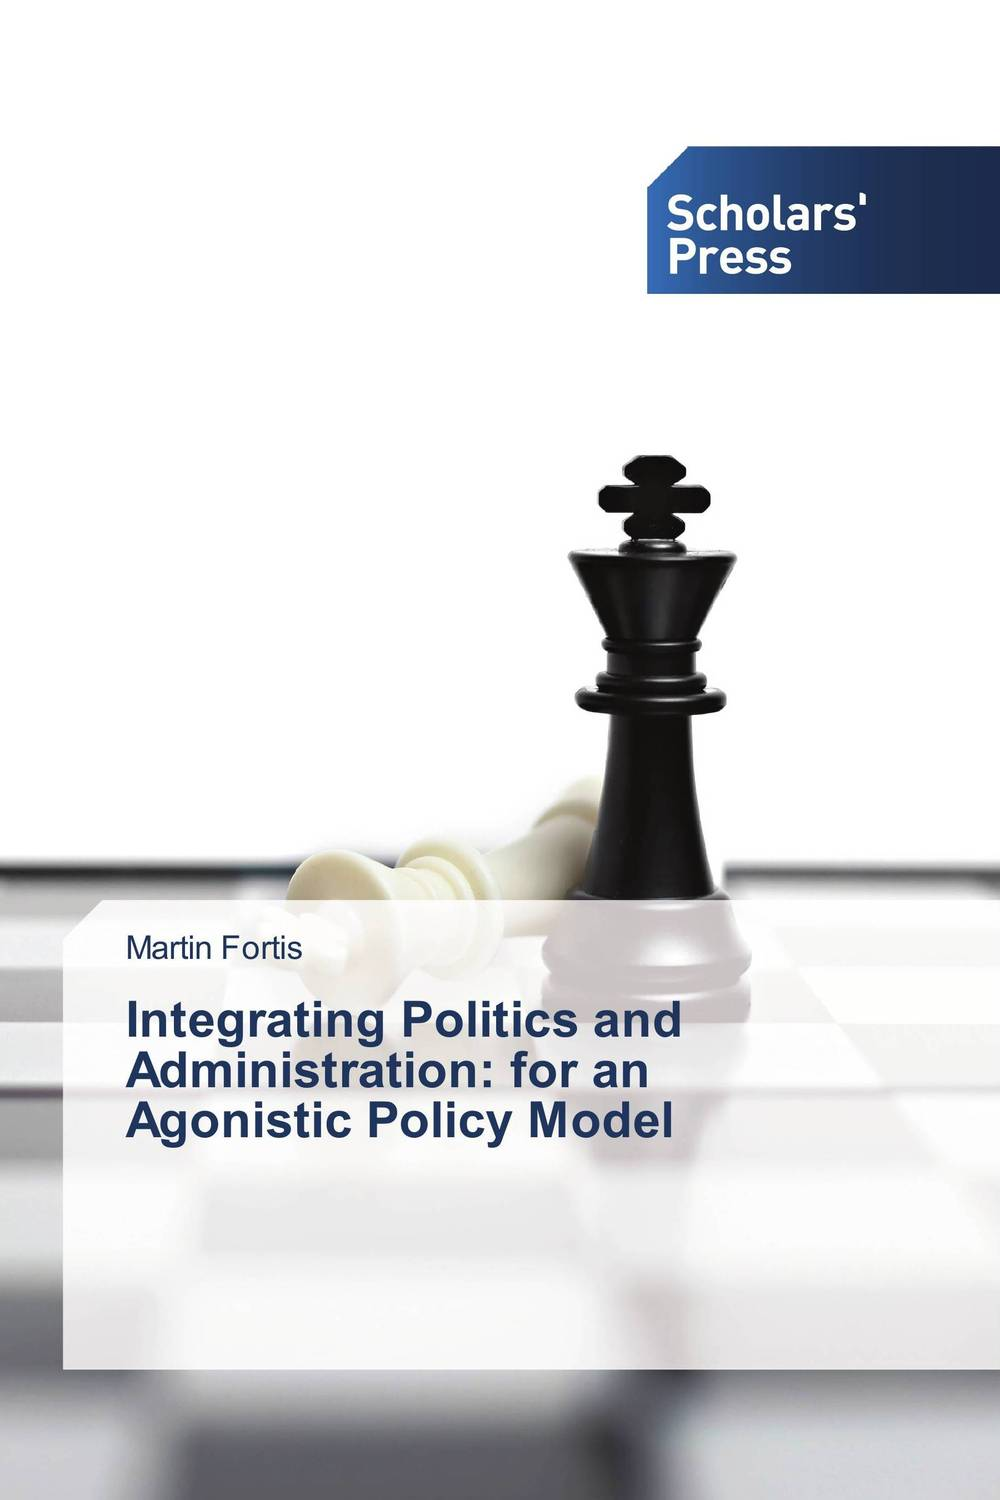 Integrating Politics and Administration: for an Agonistic Policy Model